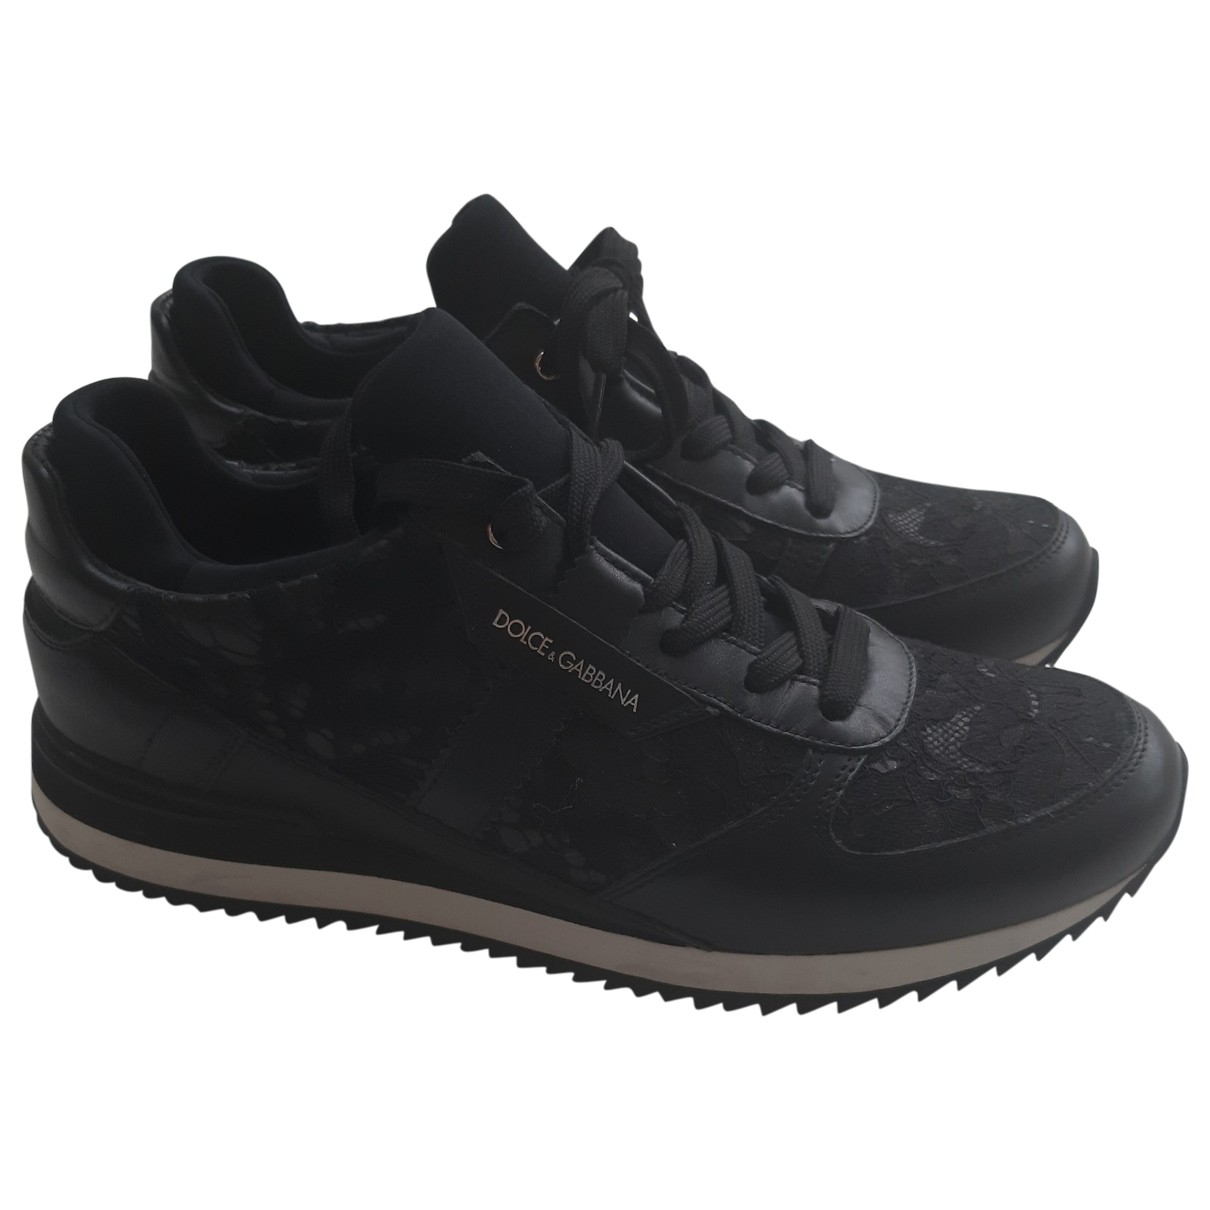 Dolce & Gabbana \N Black Leather Trainers for Women 38 EU